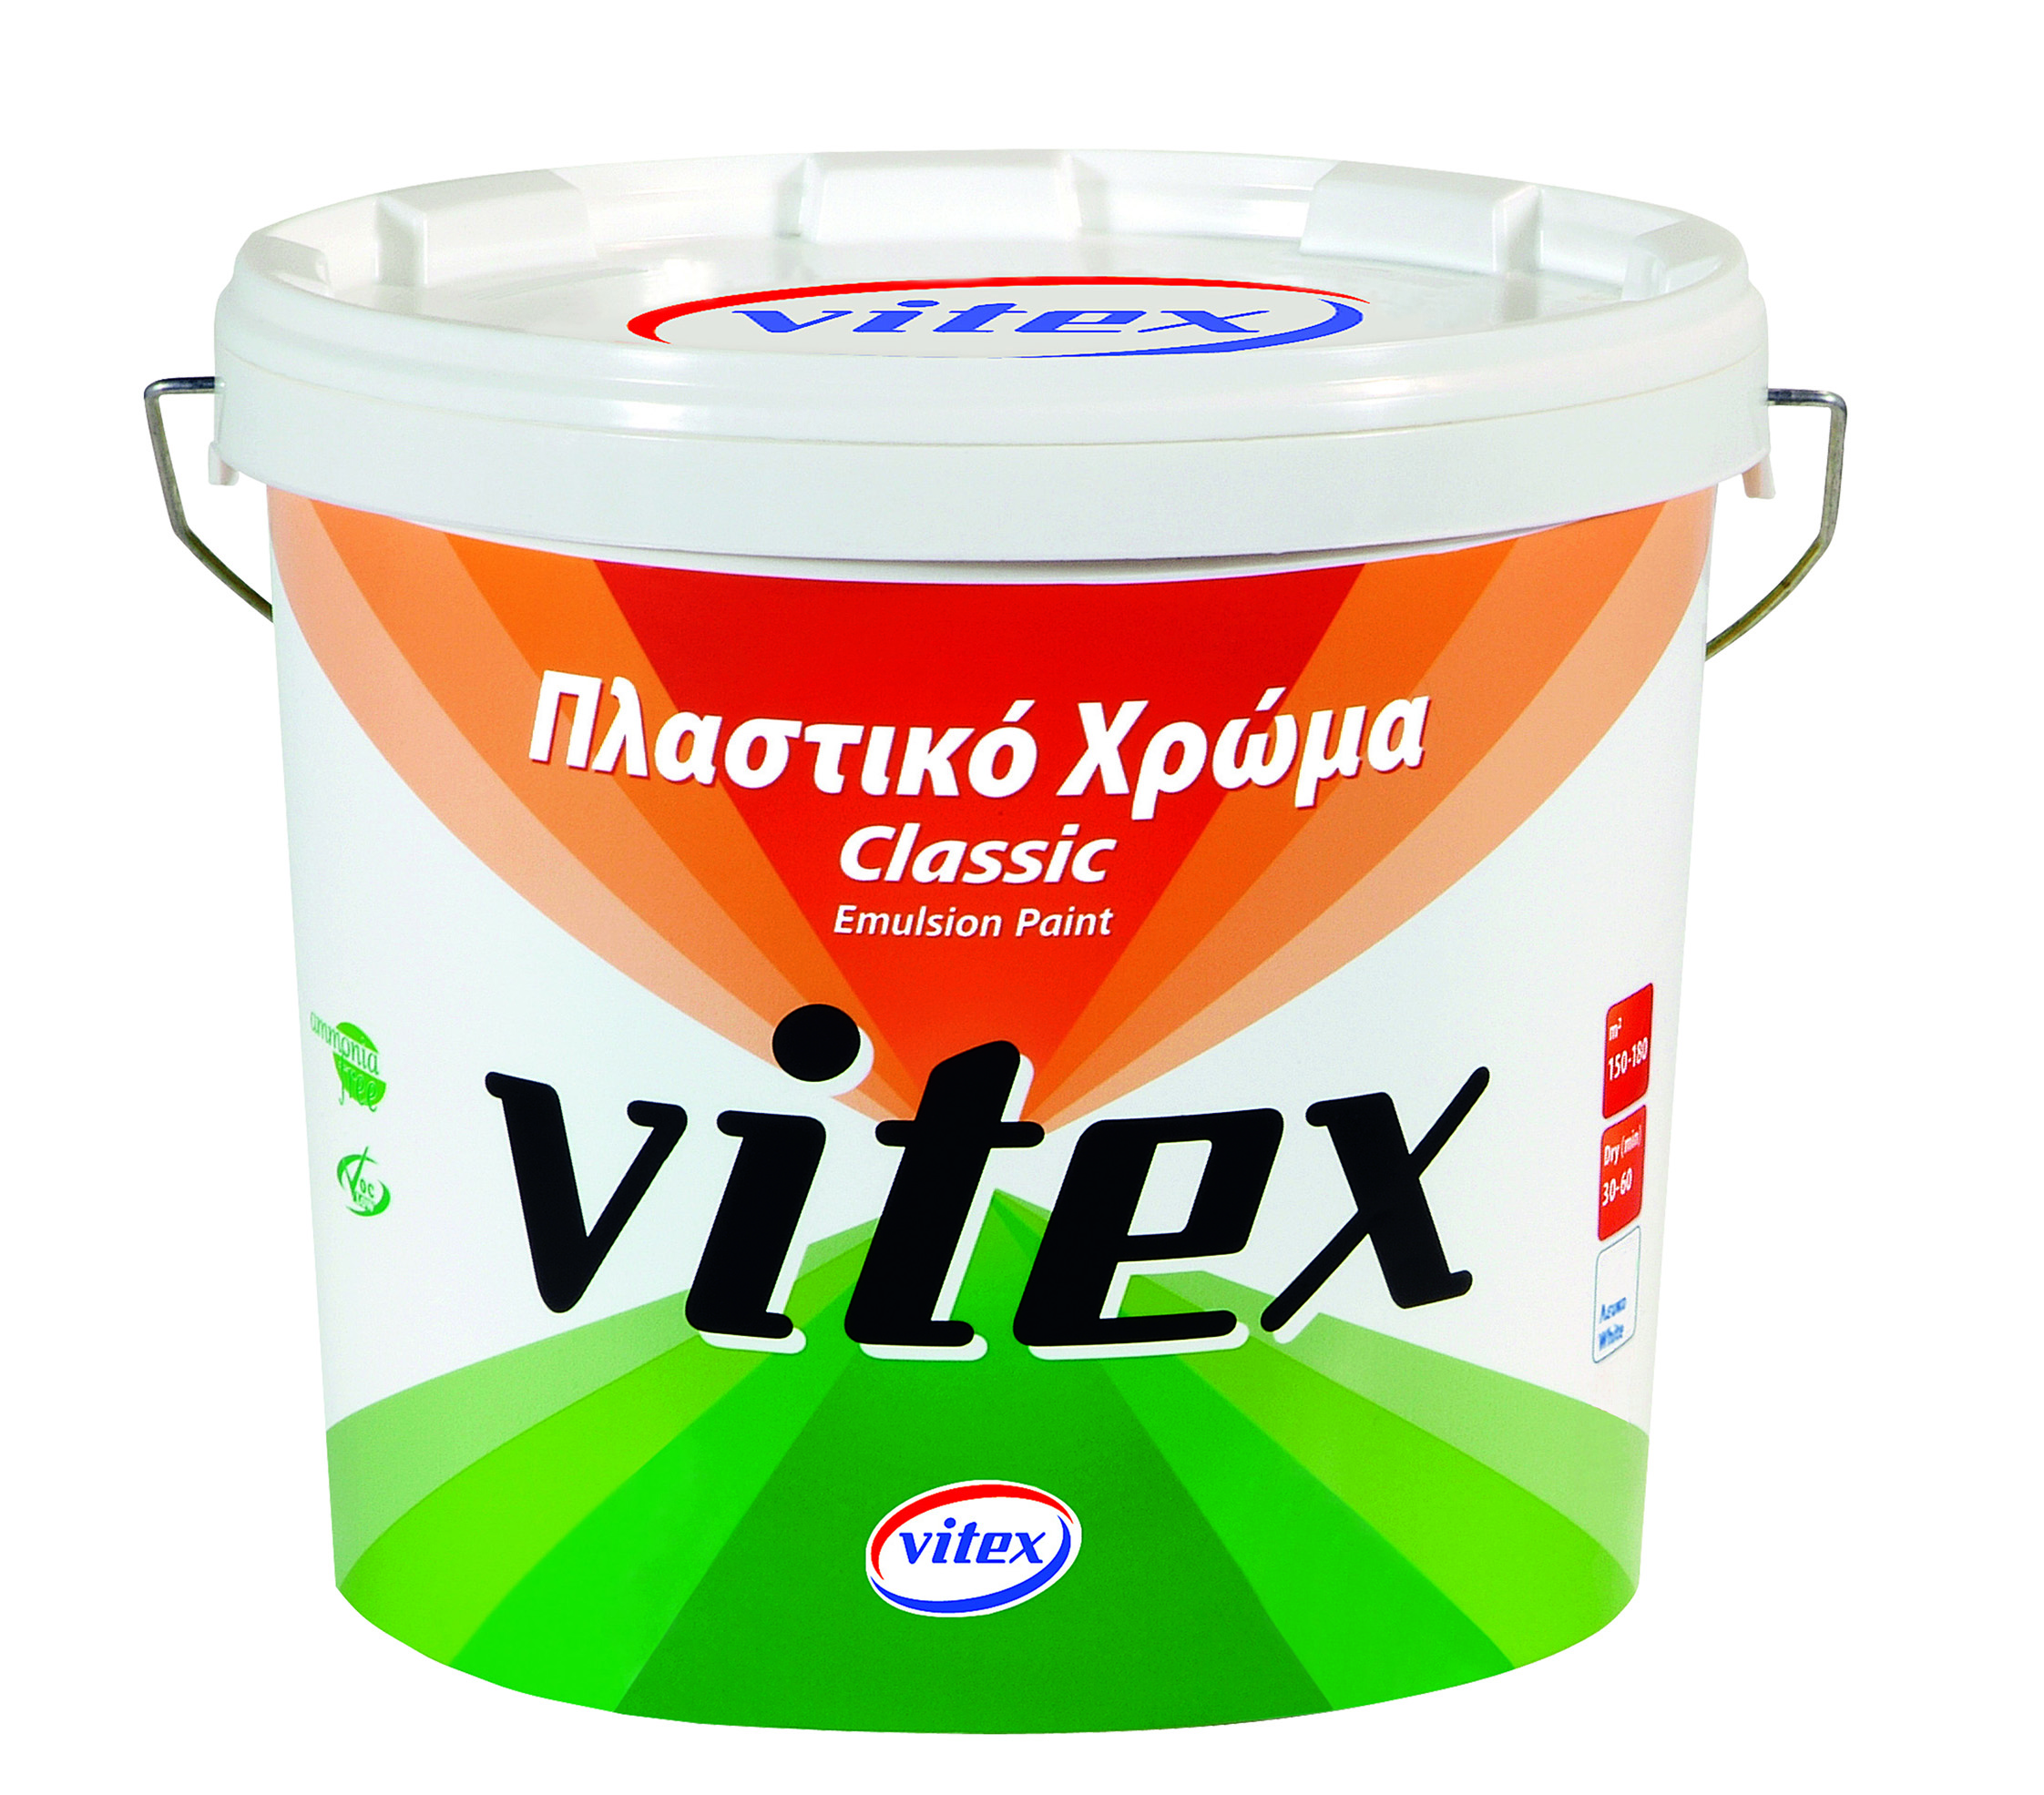 Vitex Classic 30 (roof tile red) 750mL